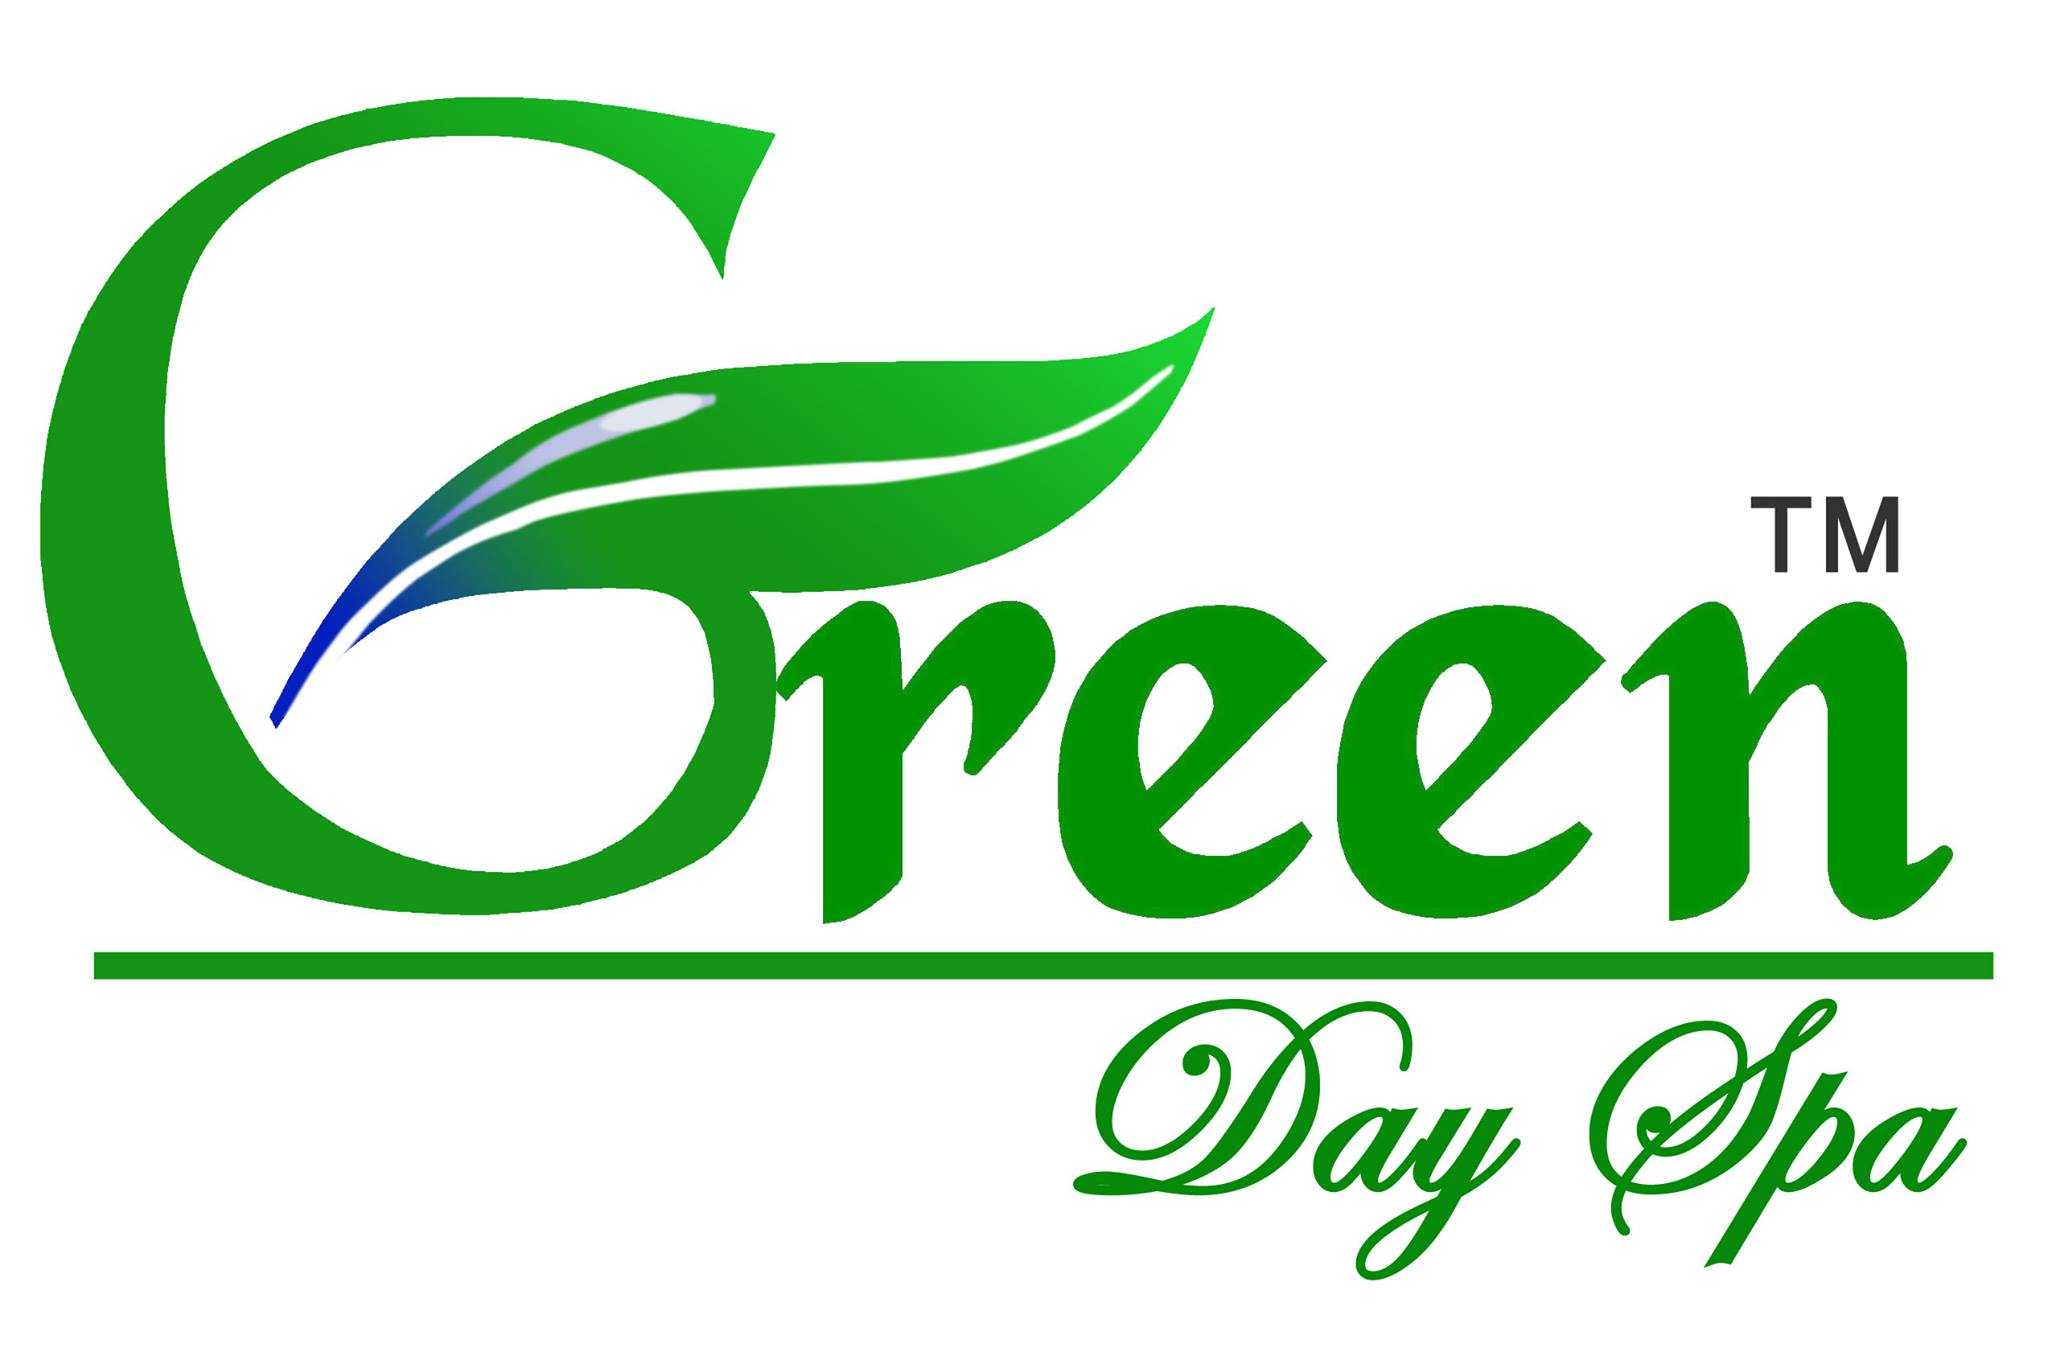 Green Day Spa - Chennai Image